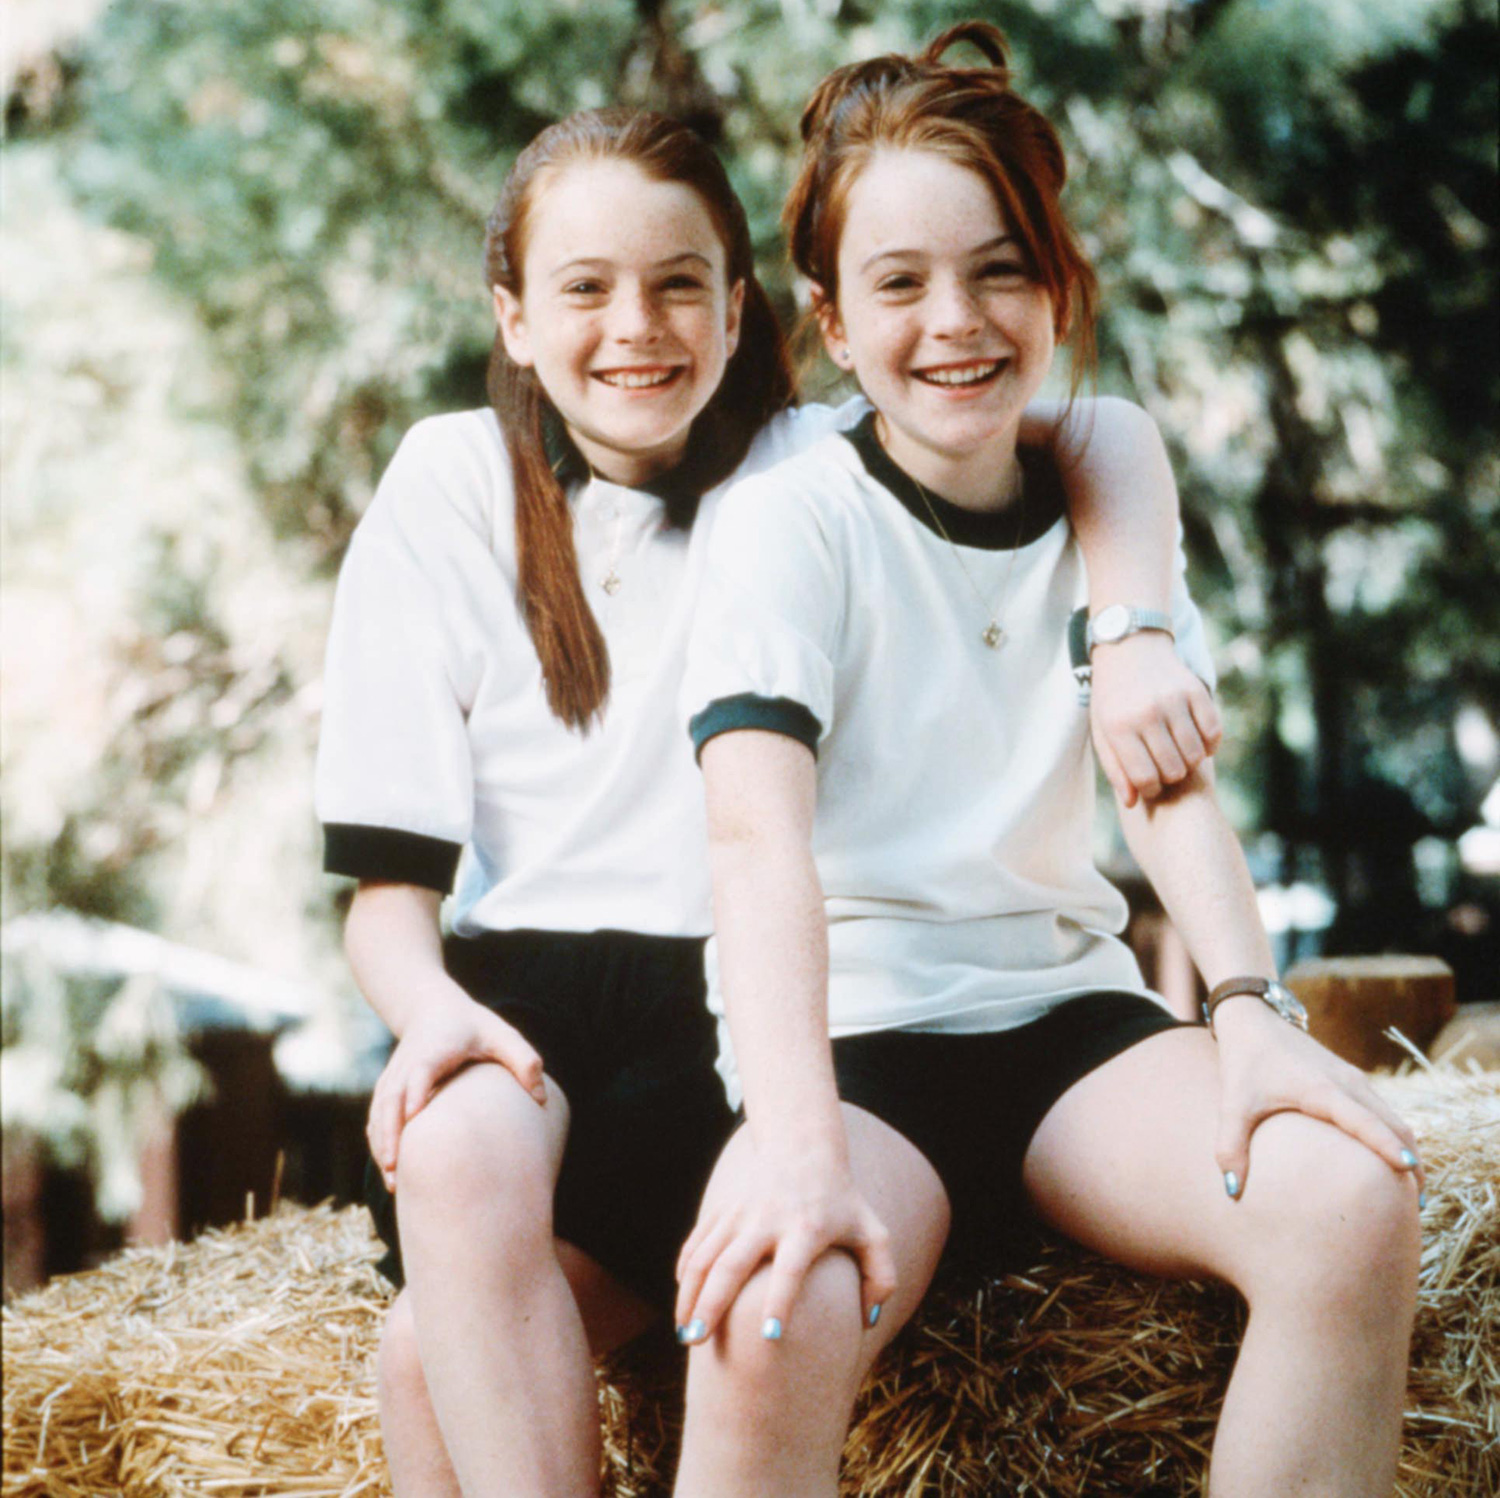 Lindsay Lohan The Parent Trap - 1998